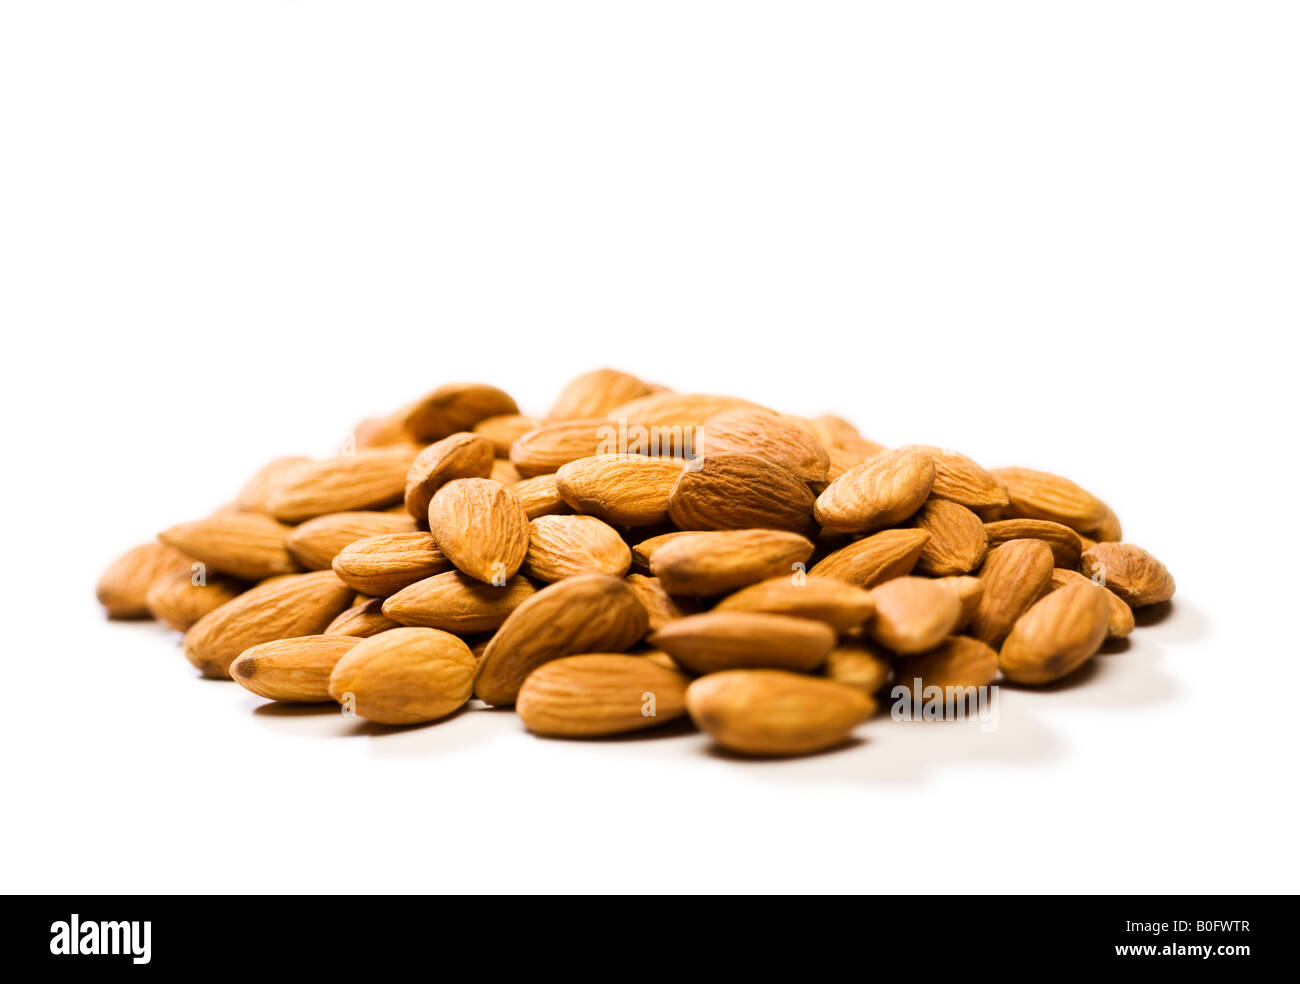 Pile of shelled Almonds, selective focus - Stock Image